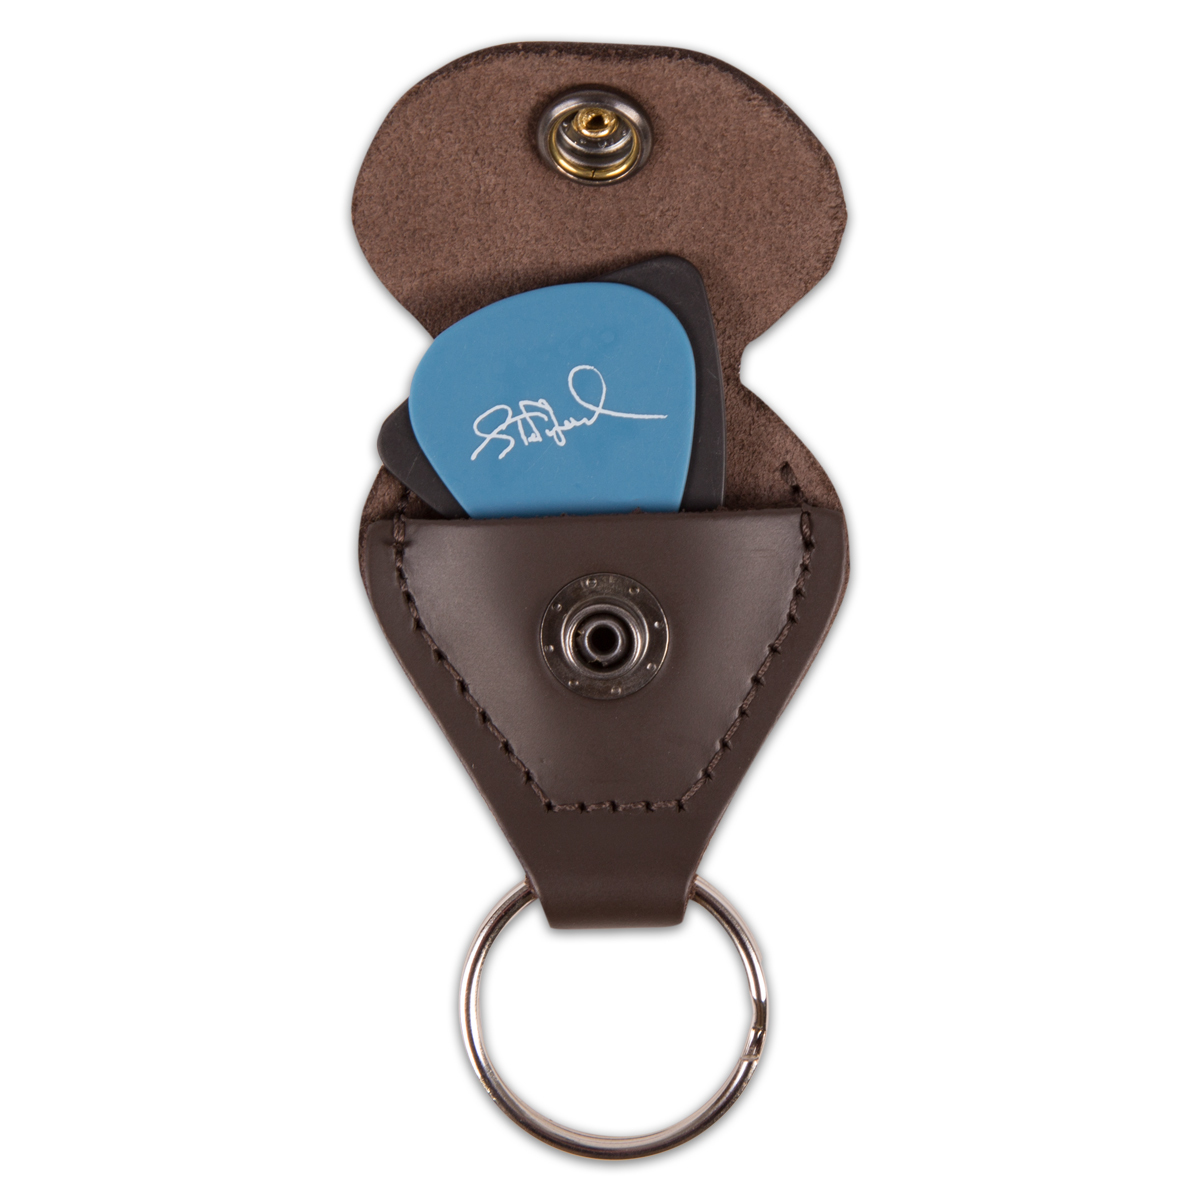 DMB Leather Guitar Pick Holder Keychain